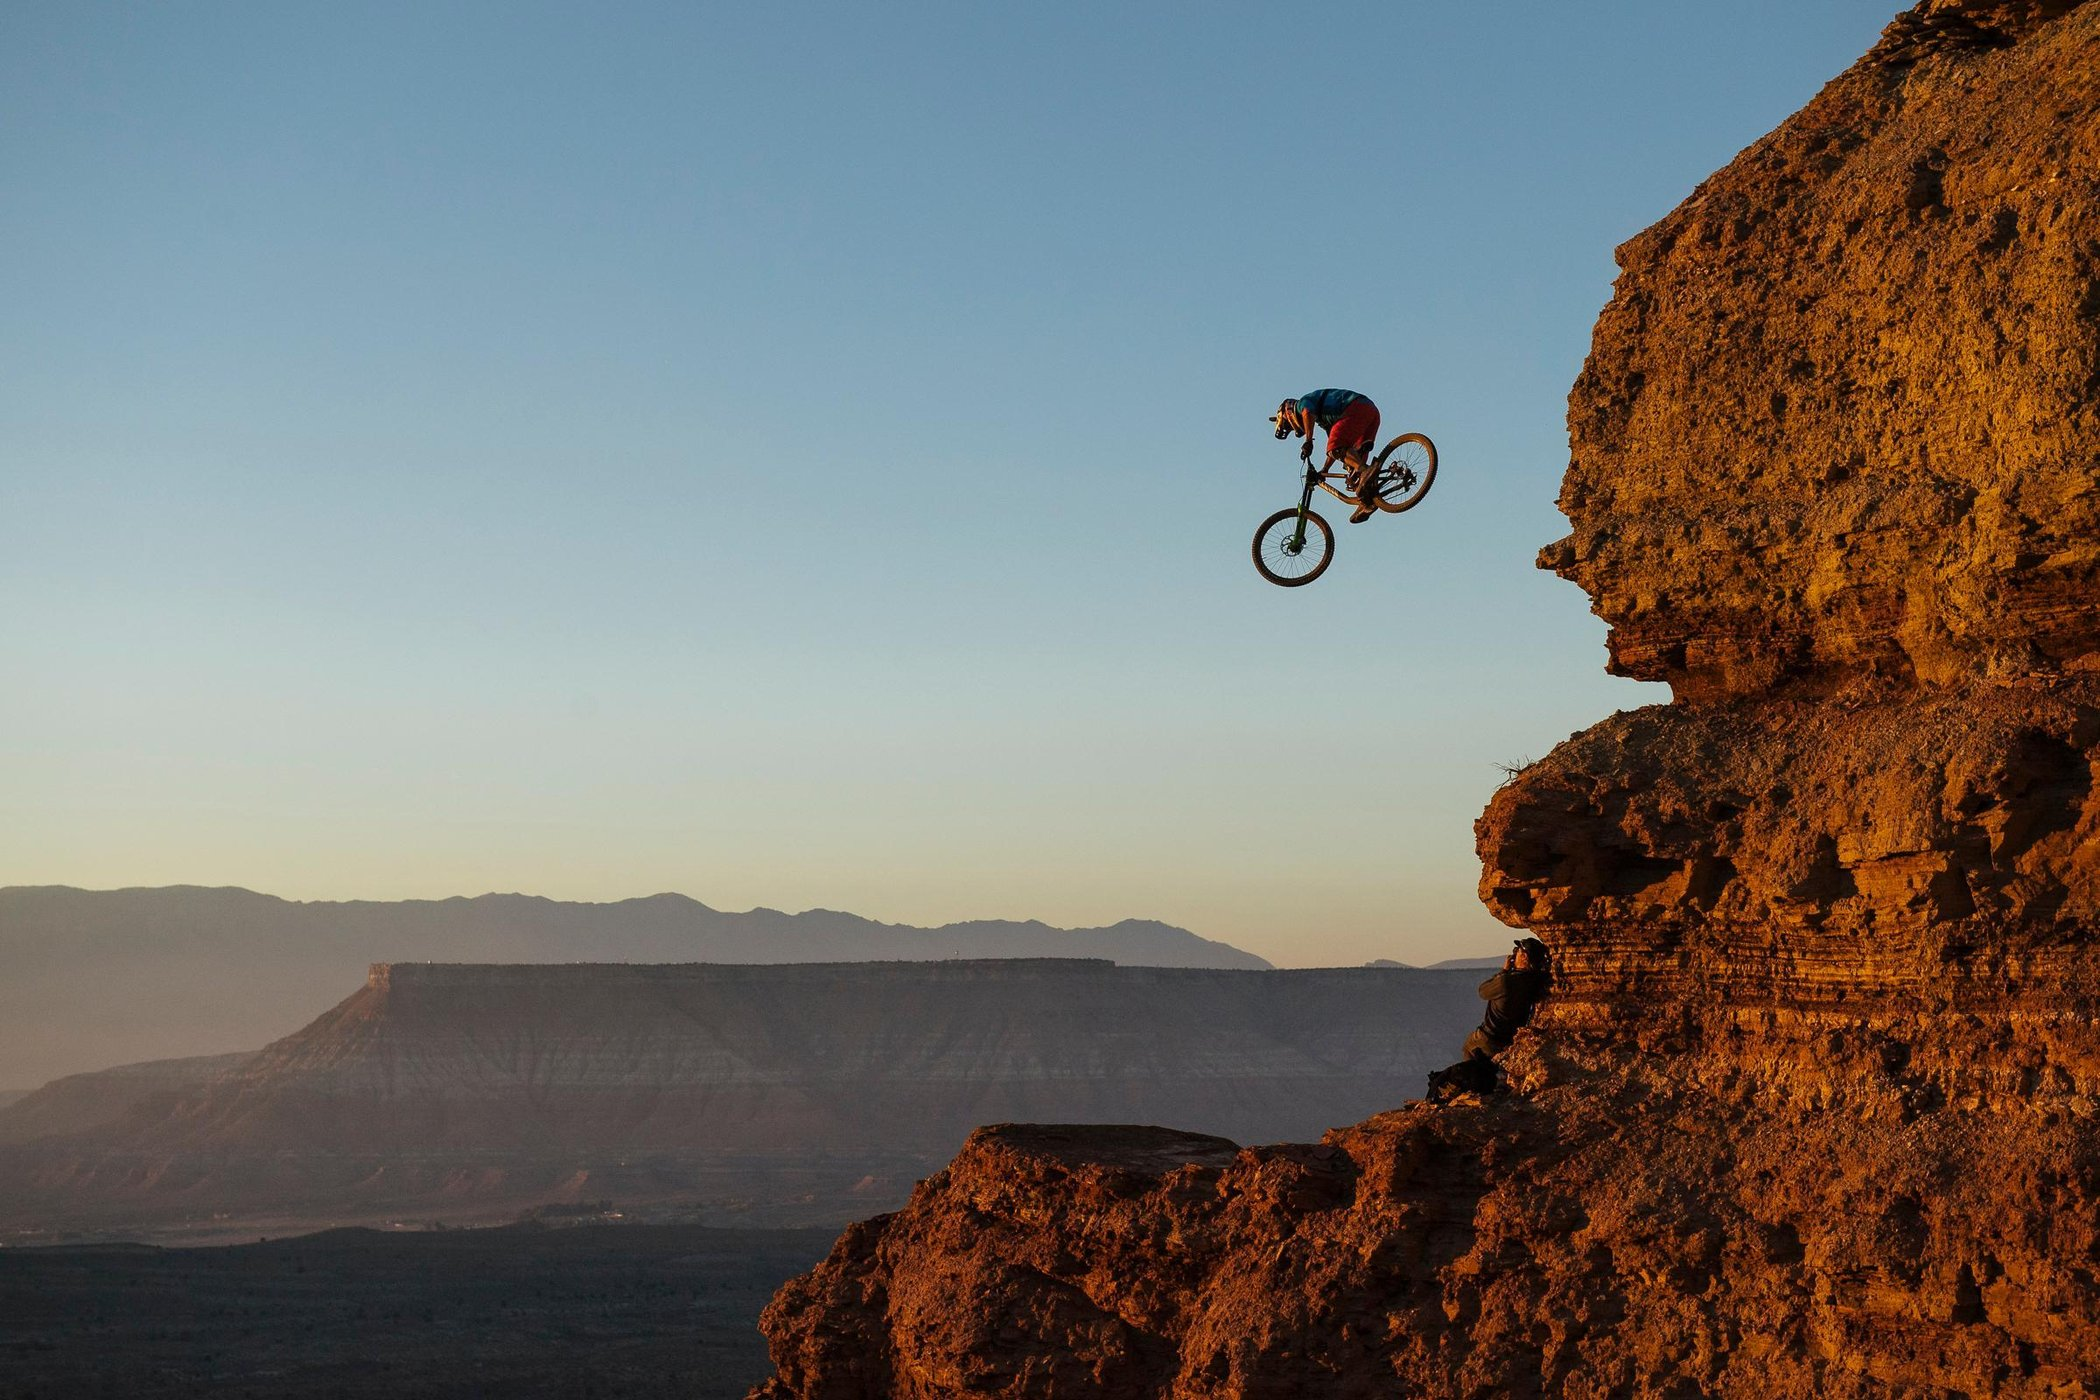 Red Bull Rampage >> How To Watch Red Bull Rampage 2018 Mountain Biking Live Gearjunkie